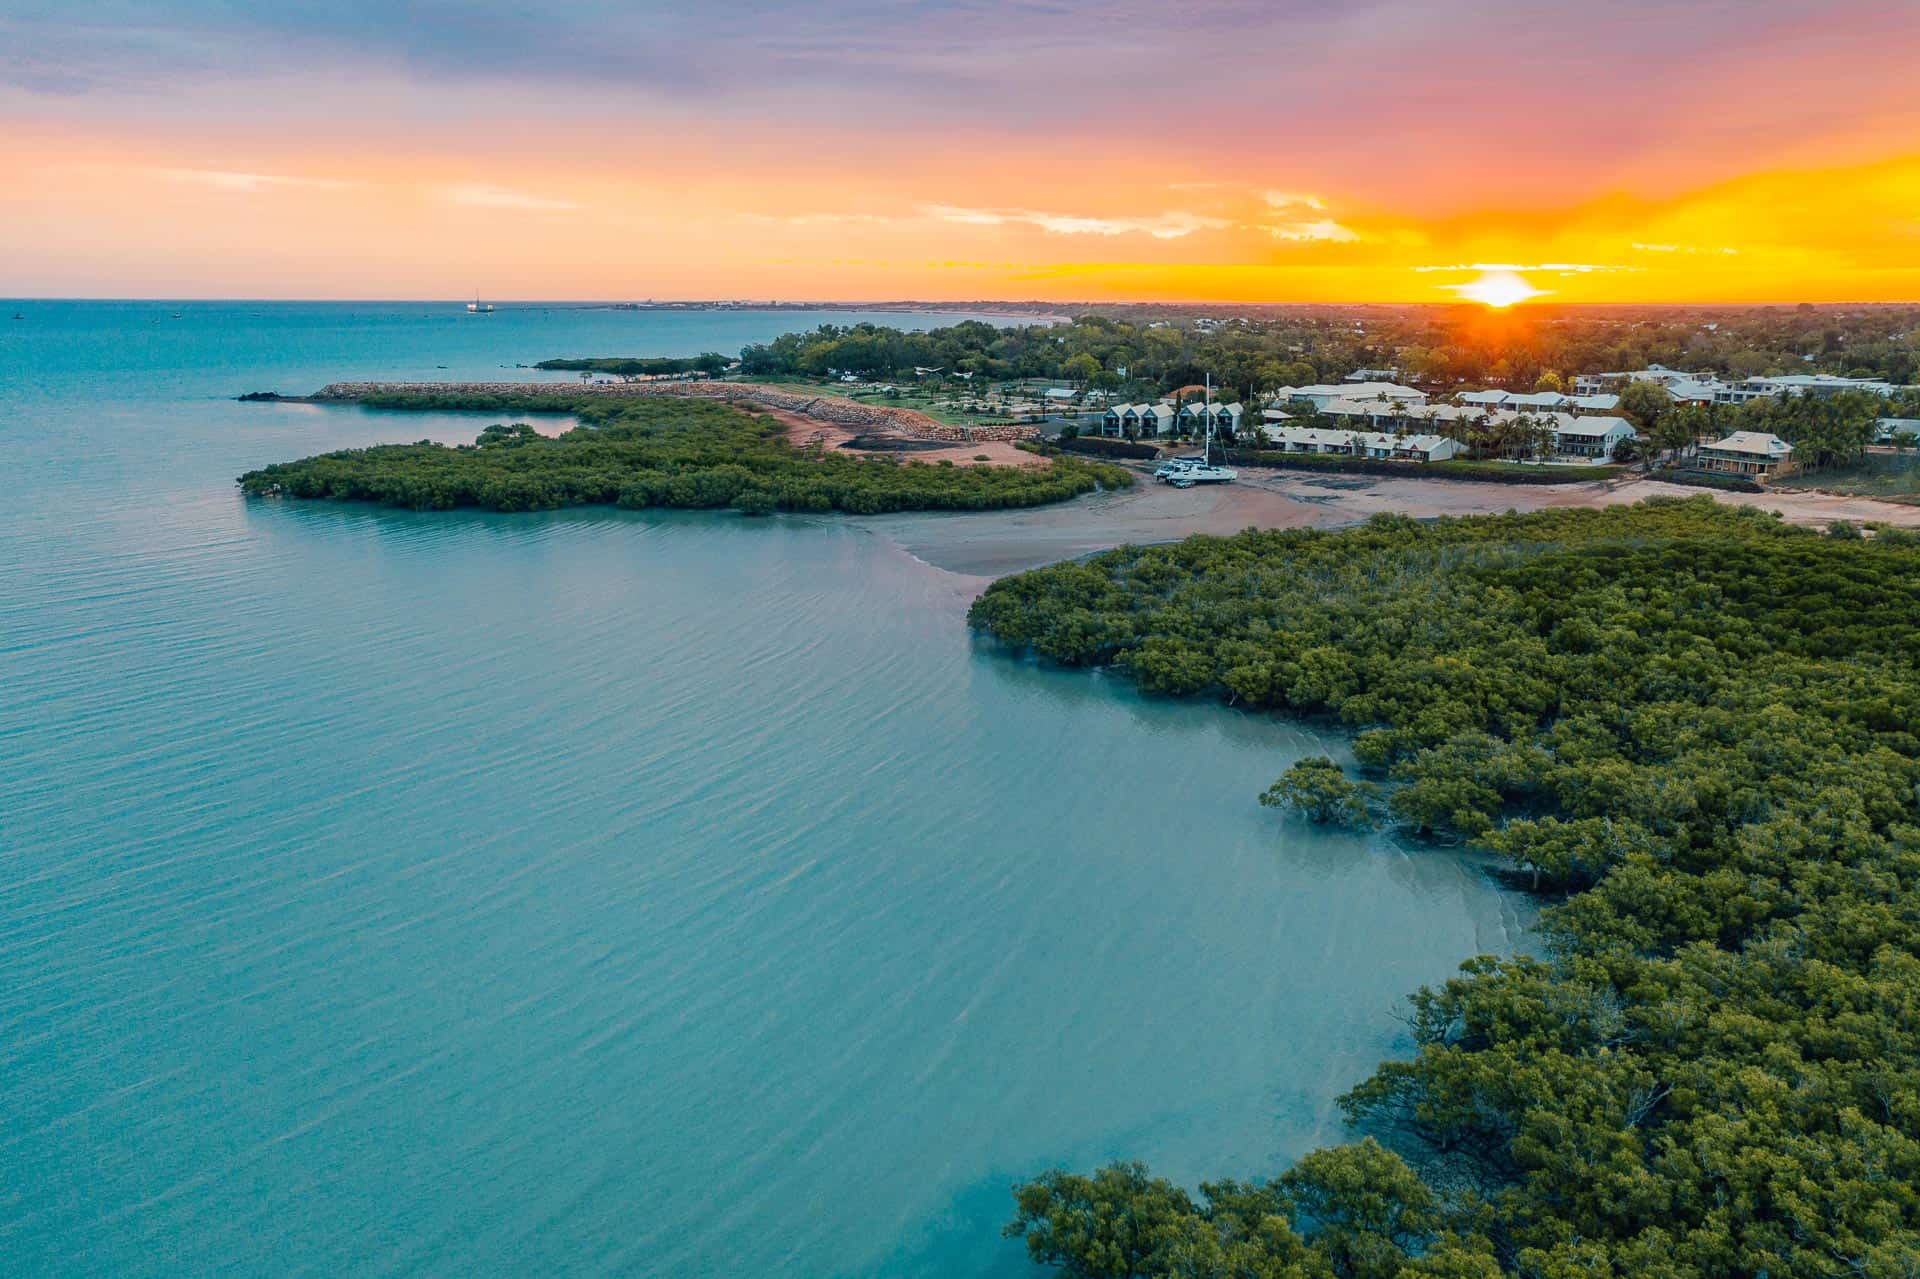 broome, broome wa, things to do in broome, broome things to do